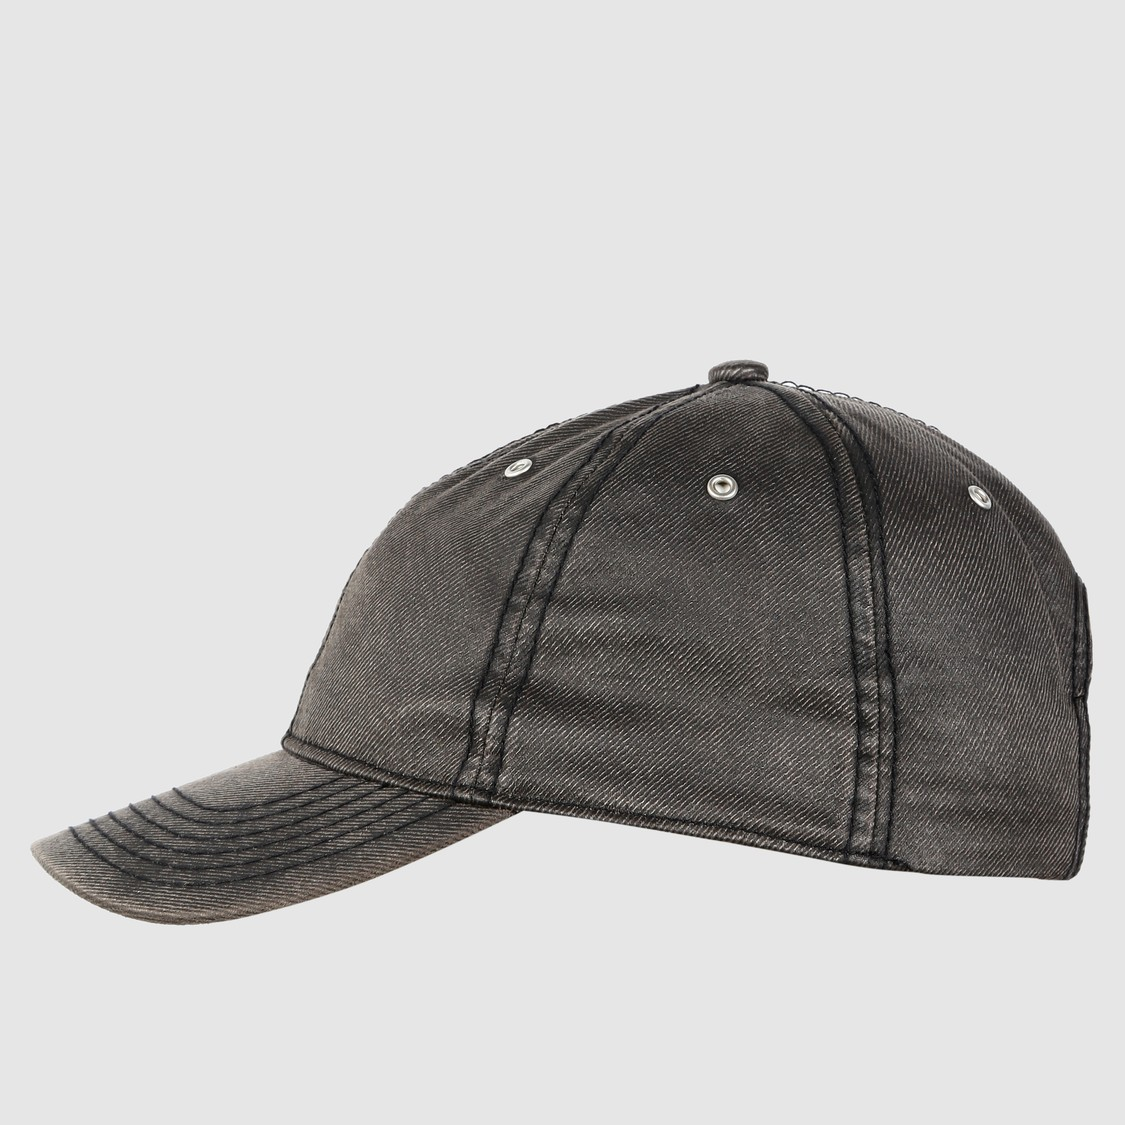 Stitch Detail Cap with Tuck-In Closure